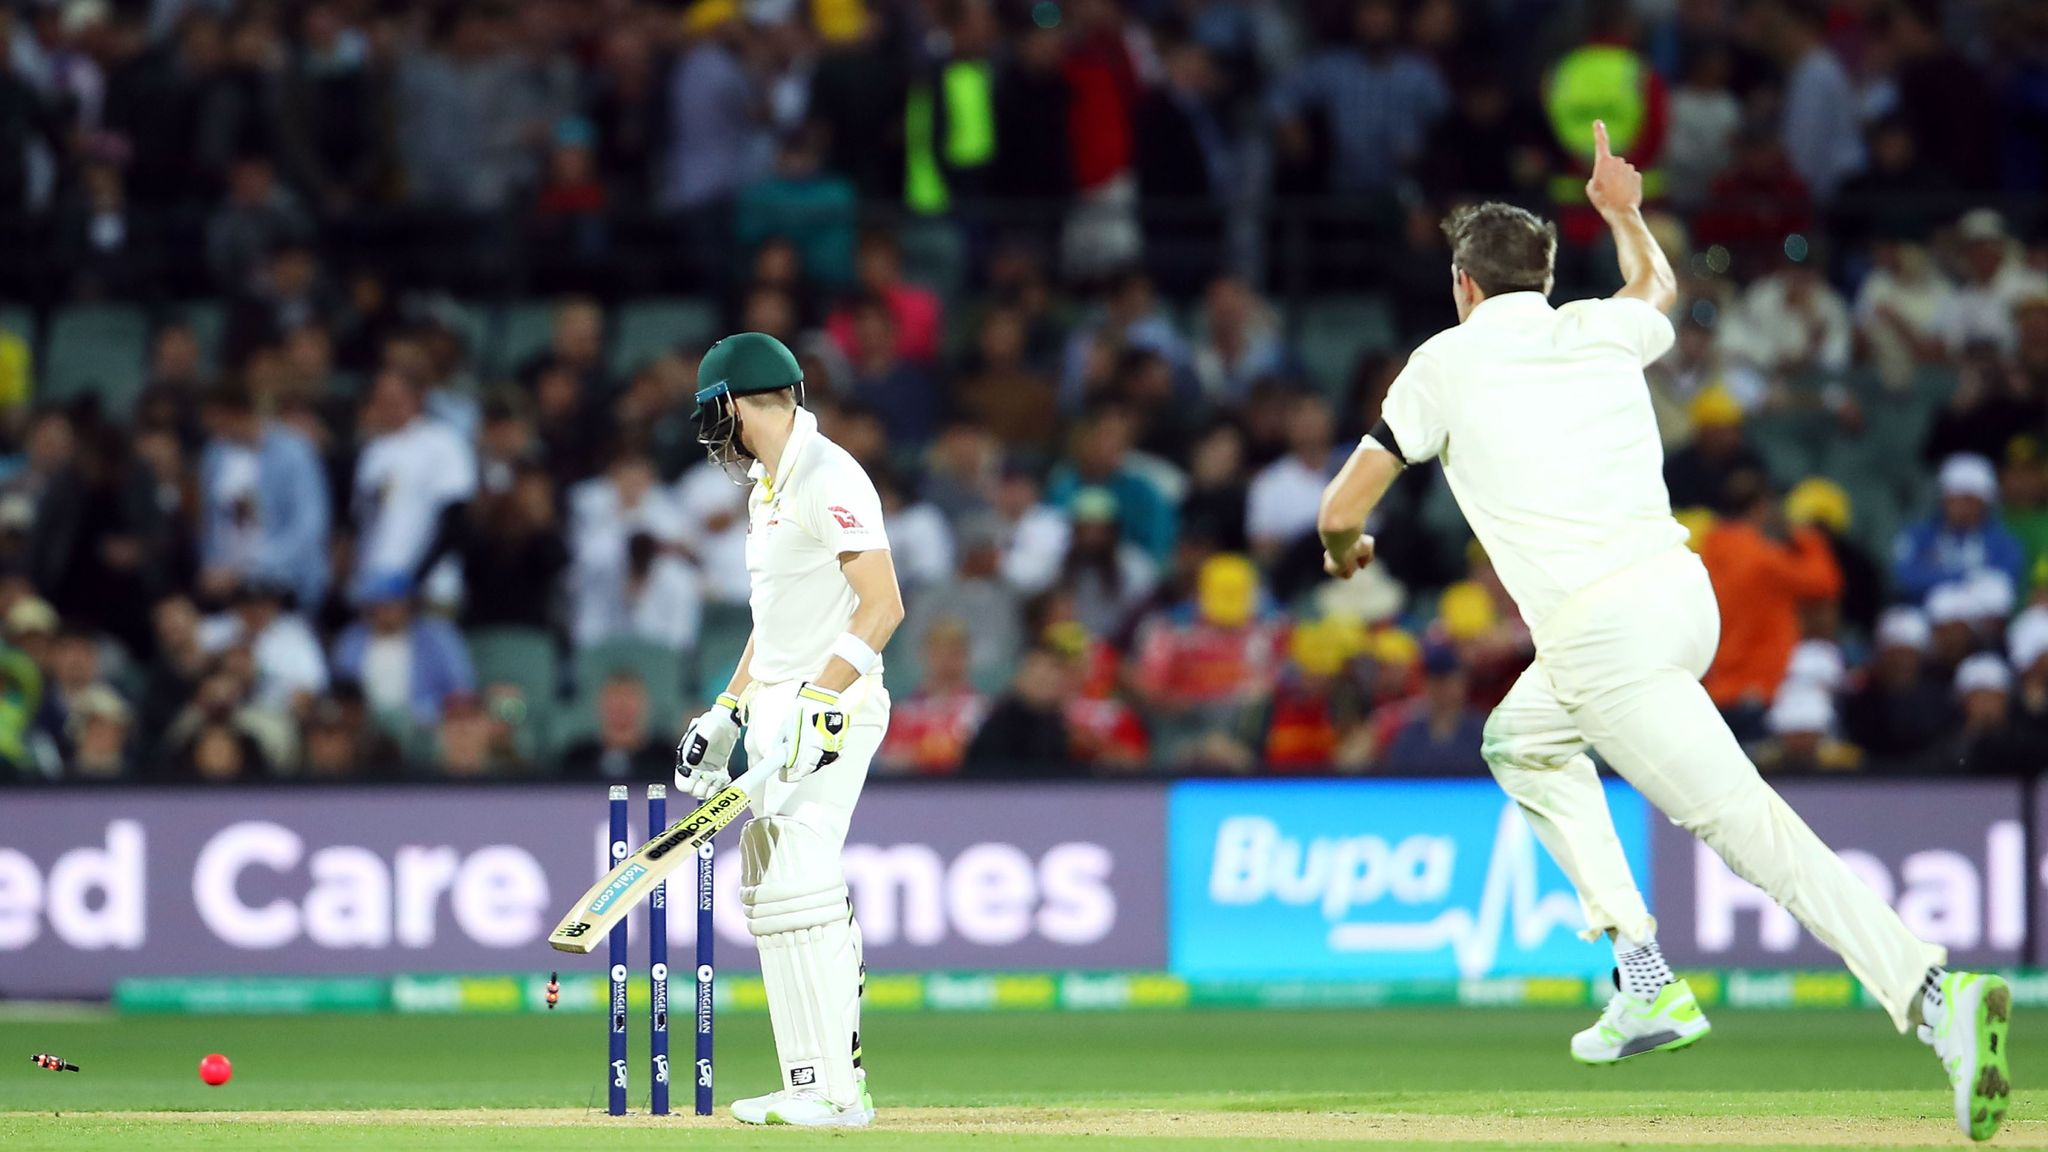 Craig Overton delighted by maiden Test wicket after Steve Smith's 'slow' jibe   Cricket News   Sky Sports